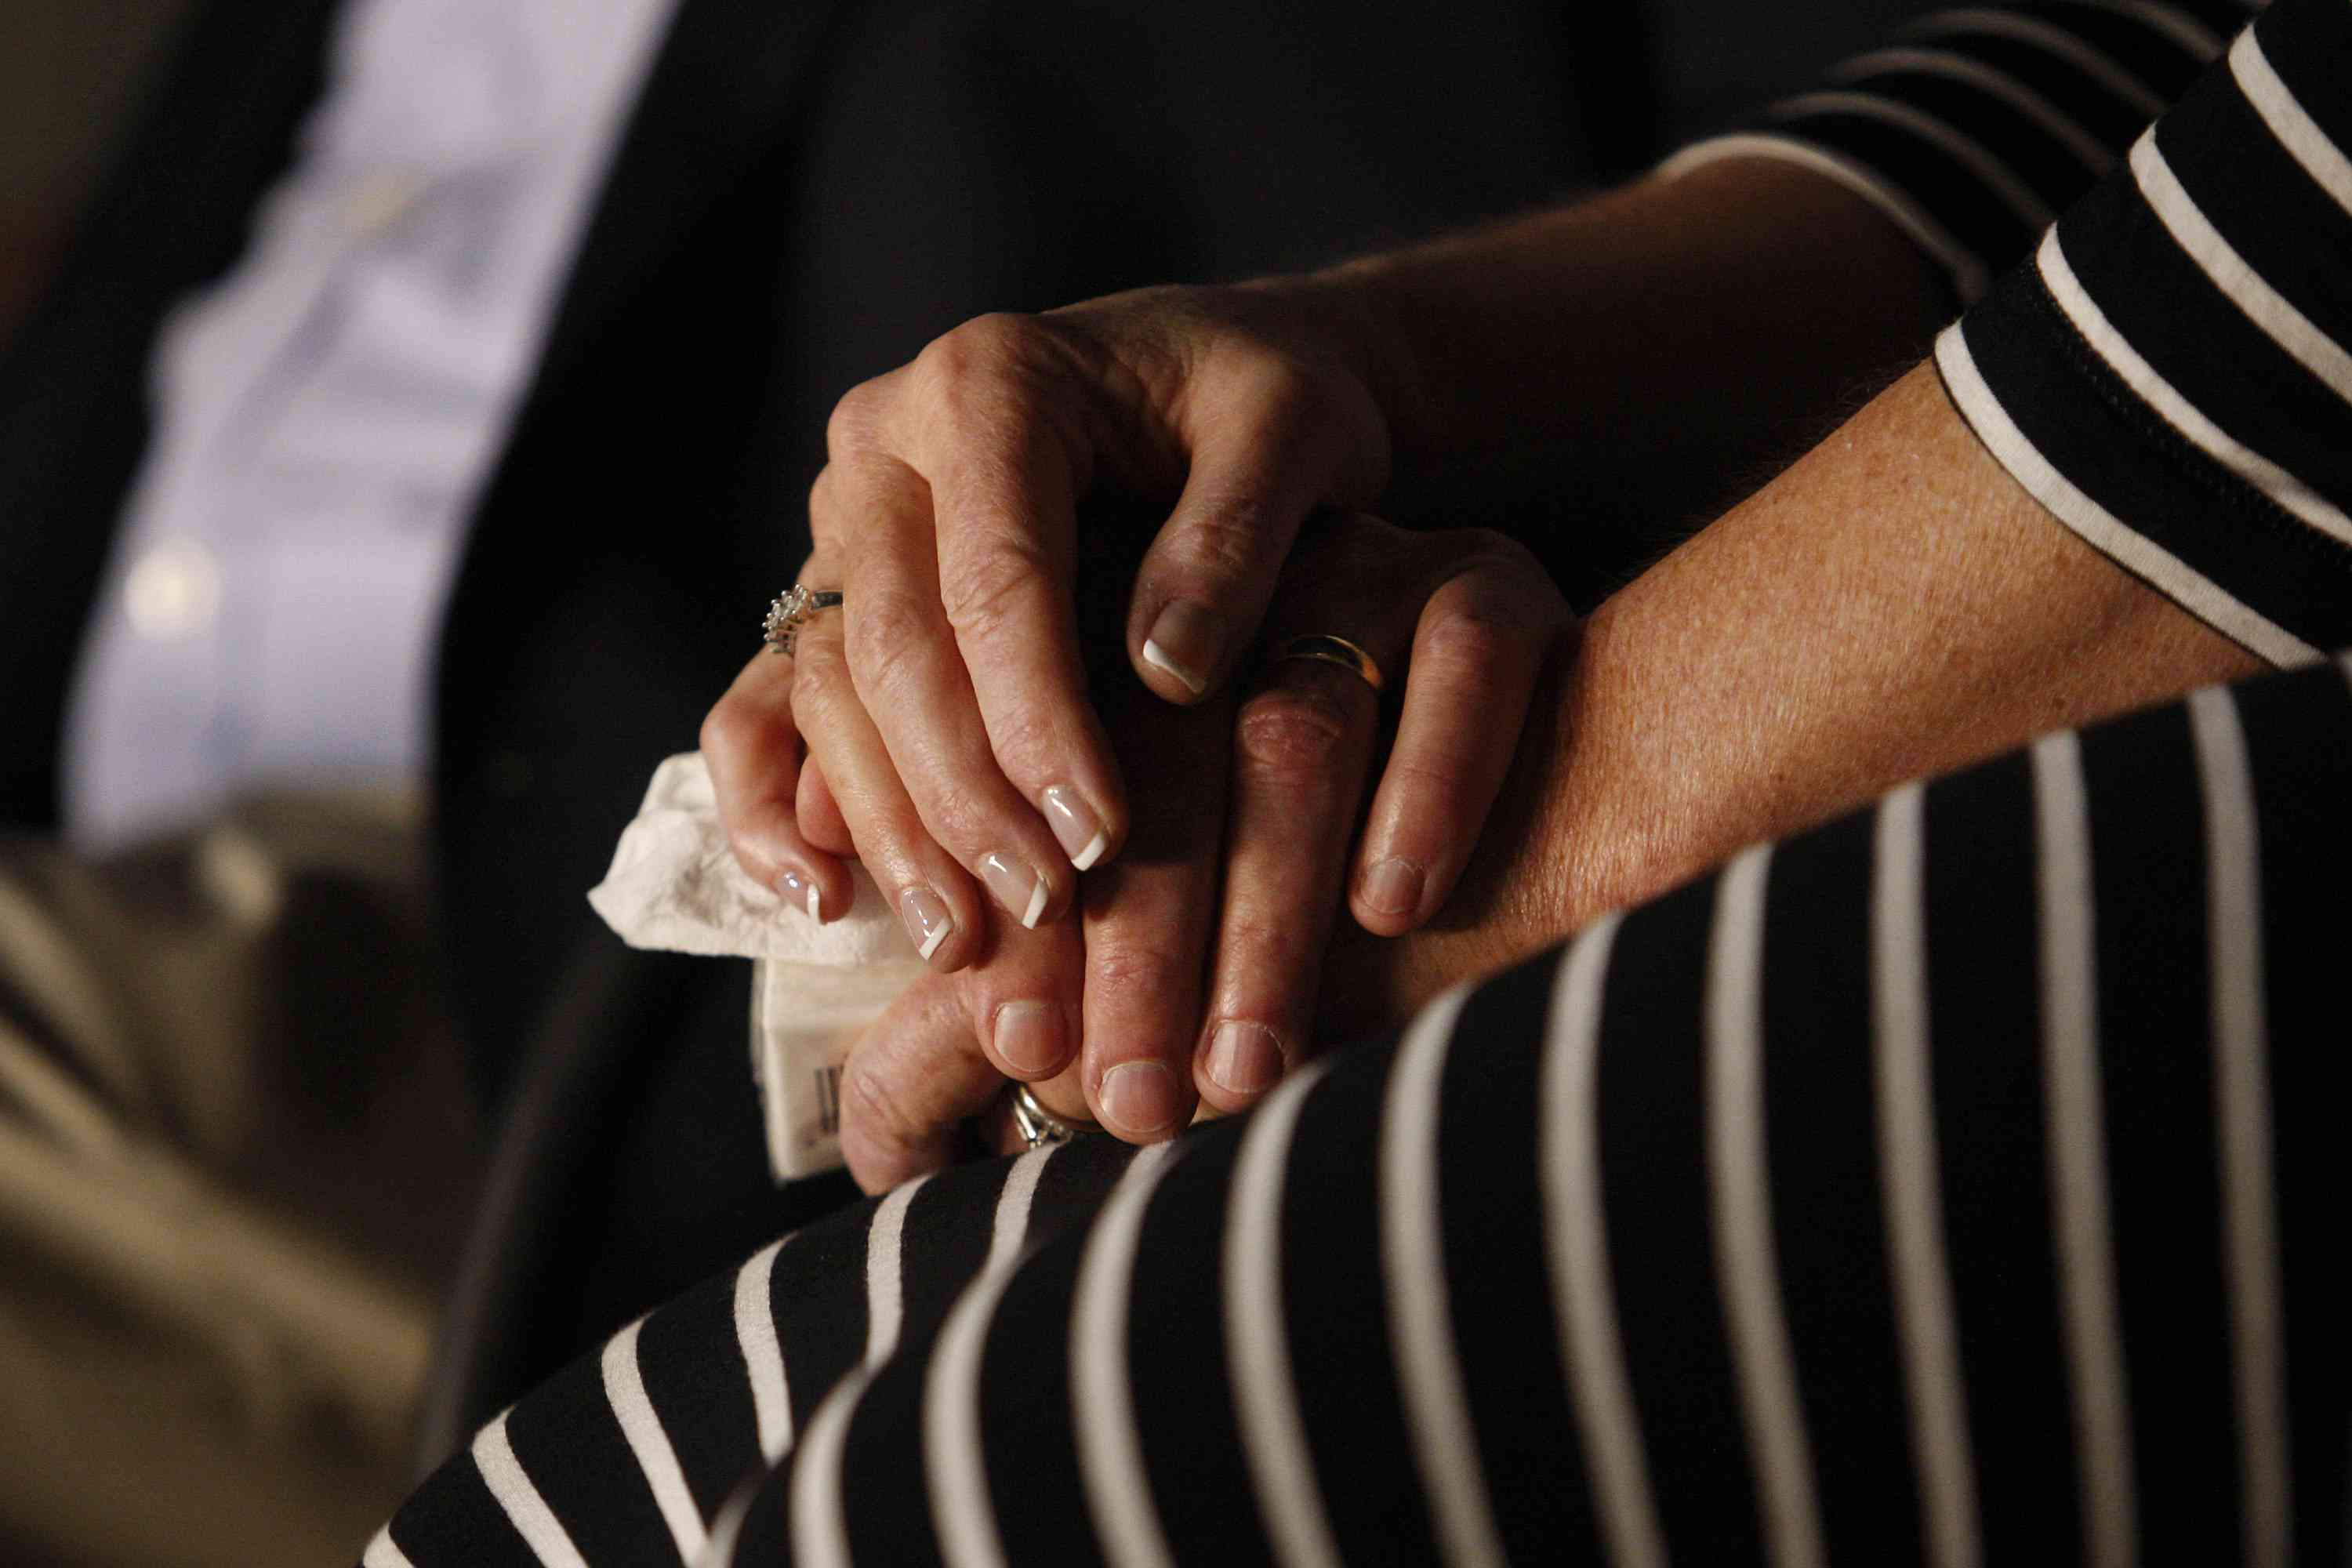 Close-up hands of grieving woman holding hand of friend